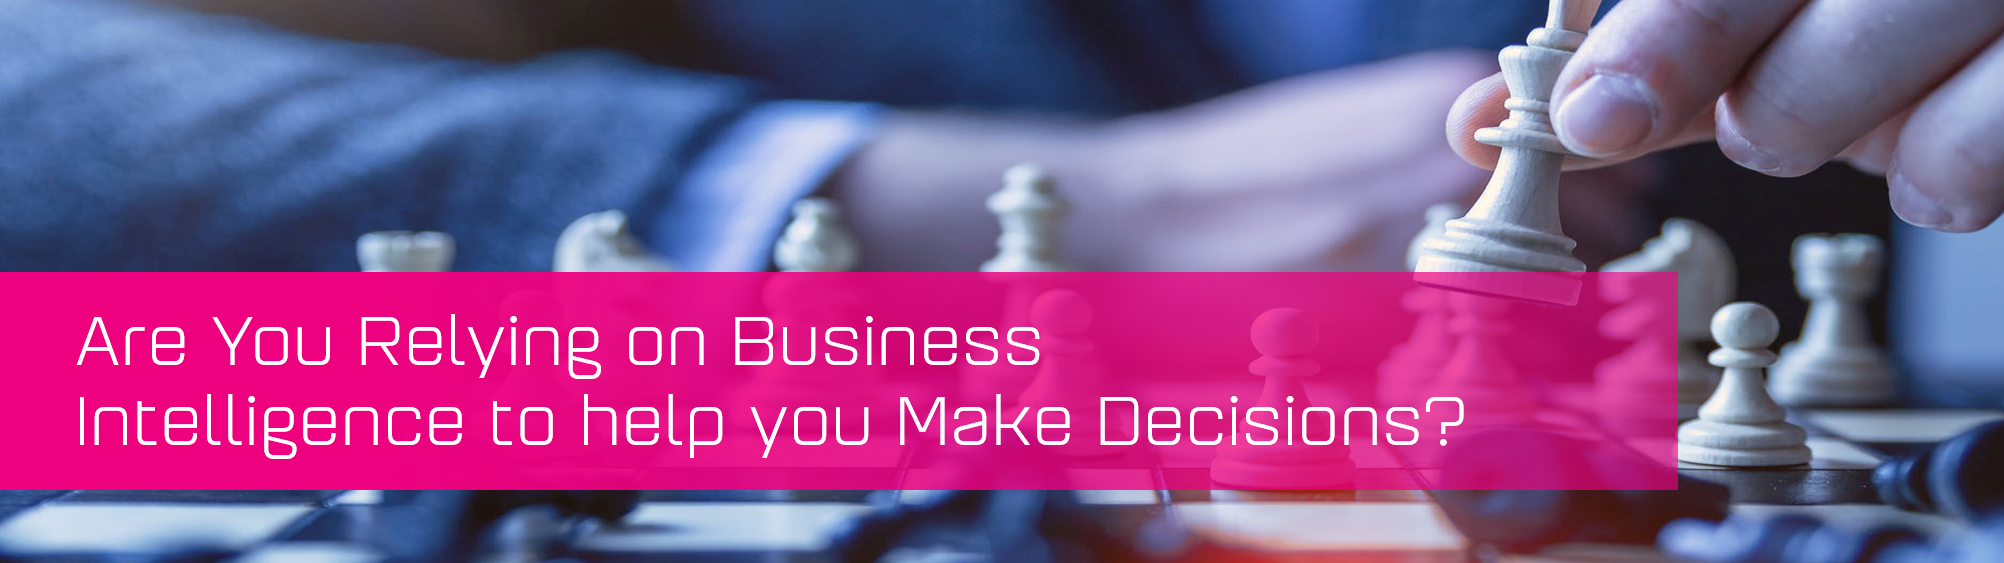 KCS SA - Blog - Are You Relying on Business Intelligence to help you Make Decisions banner image